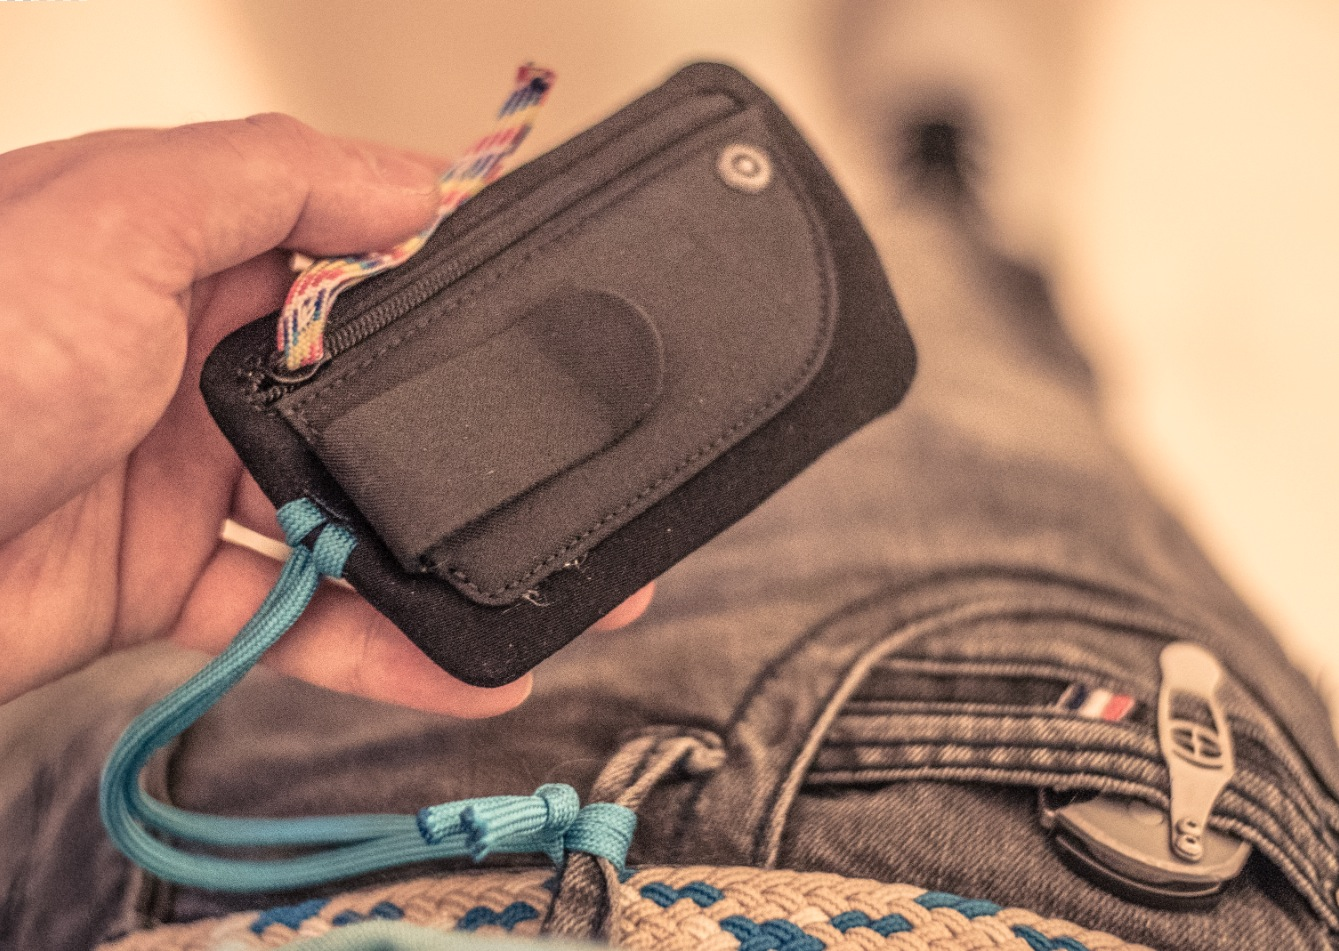 """The  Go 887 travel wallet . I added a couple of strings, one for securing to my belt loop and another as a replacement to the metal zip pull-tab thing. And I removed the """"Go"""" logo tag."""